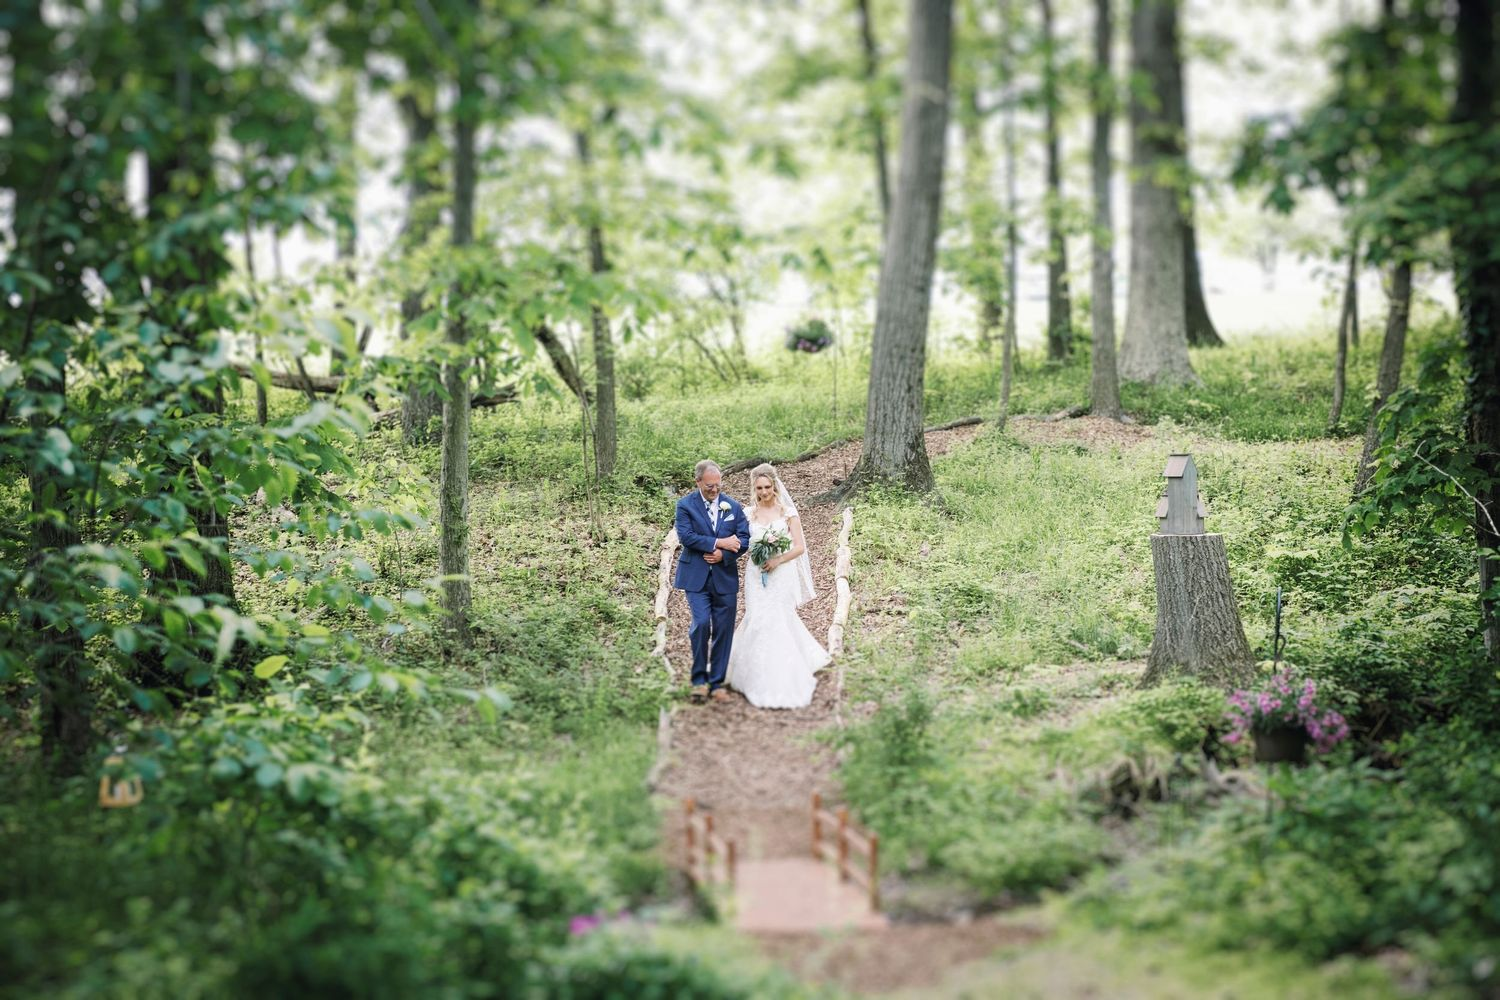 bride escorted by father during backyard farm wedding in woods